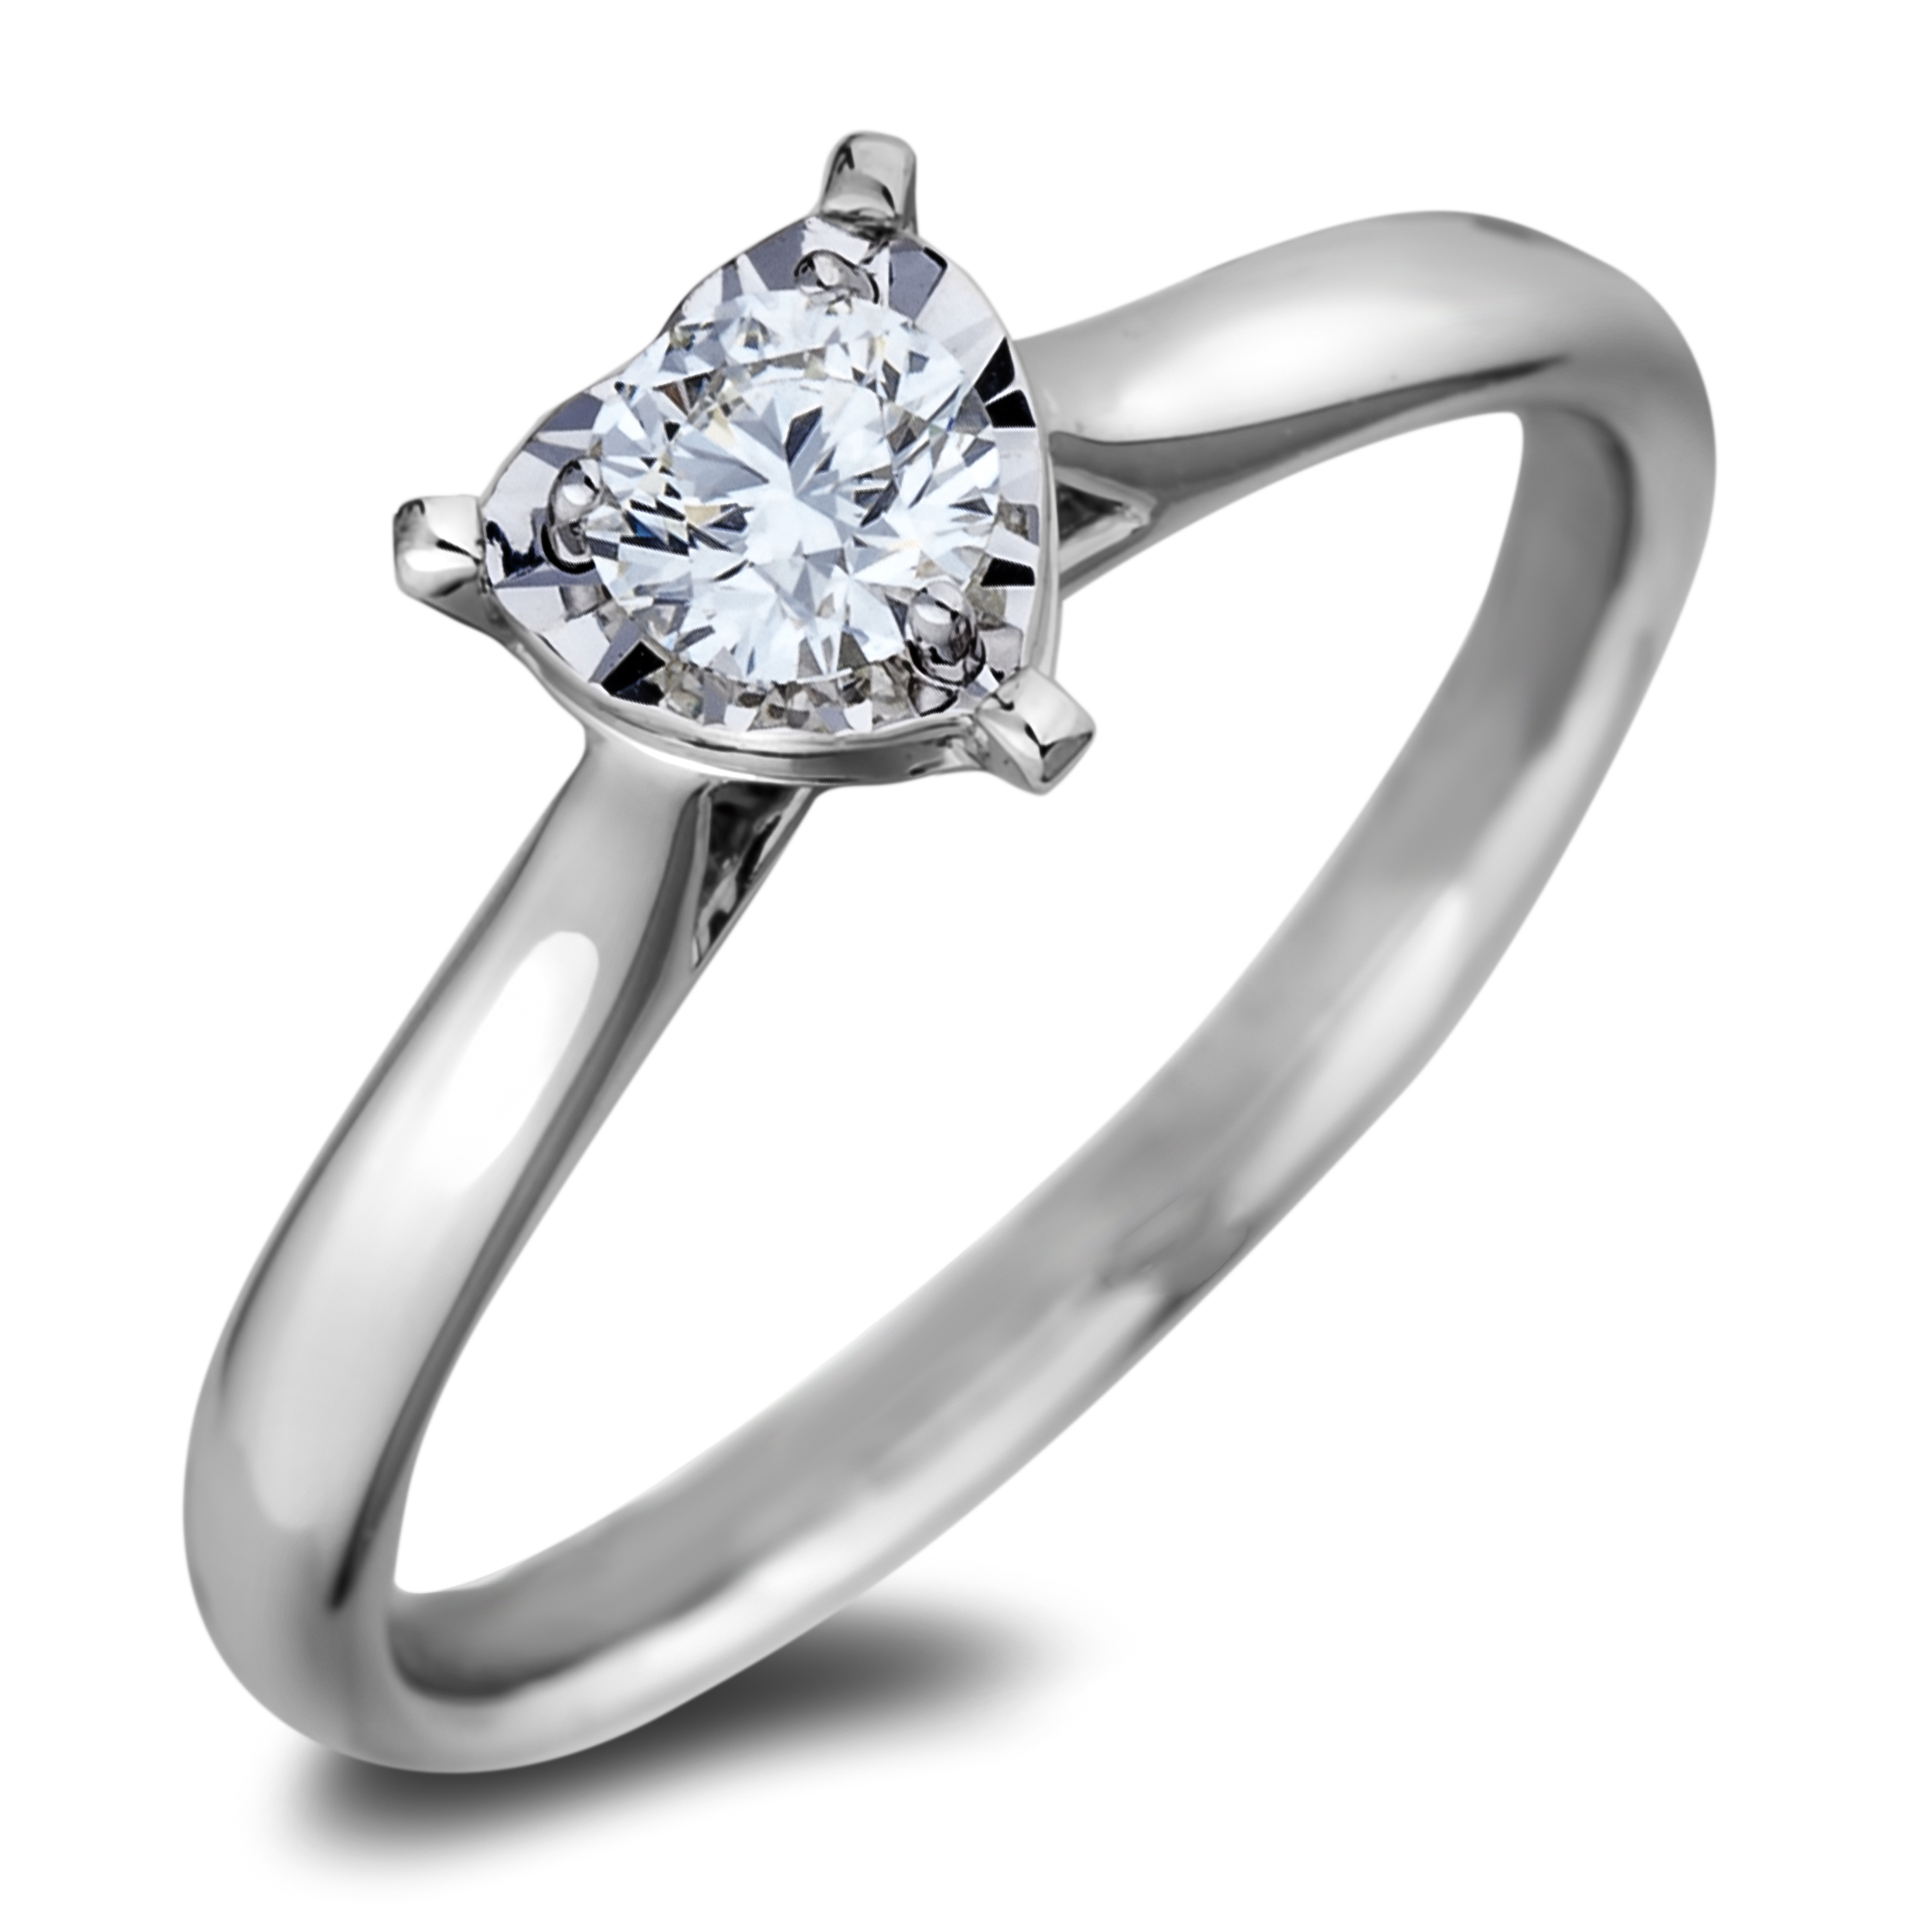 Diamond Solitaire Rings AFCR2130025 (Rings)